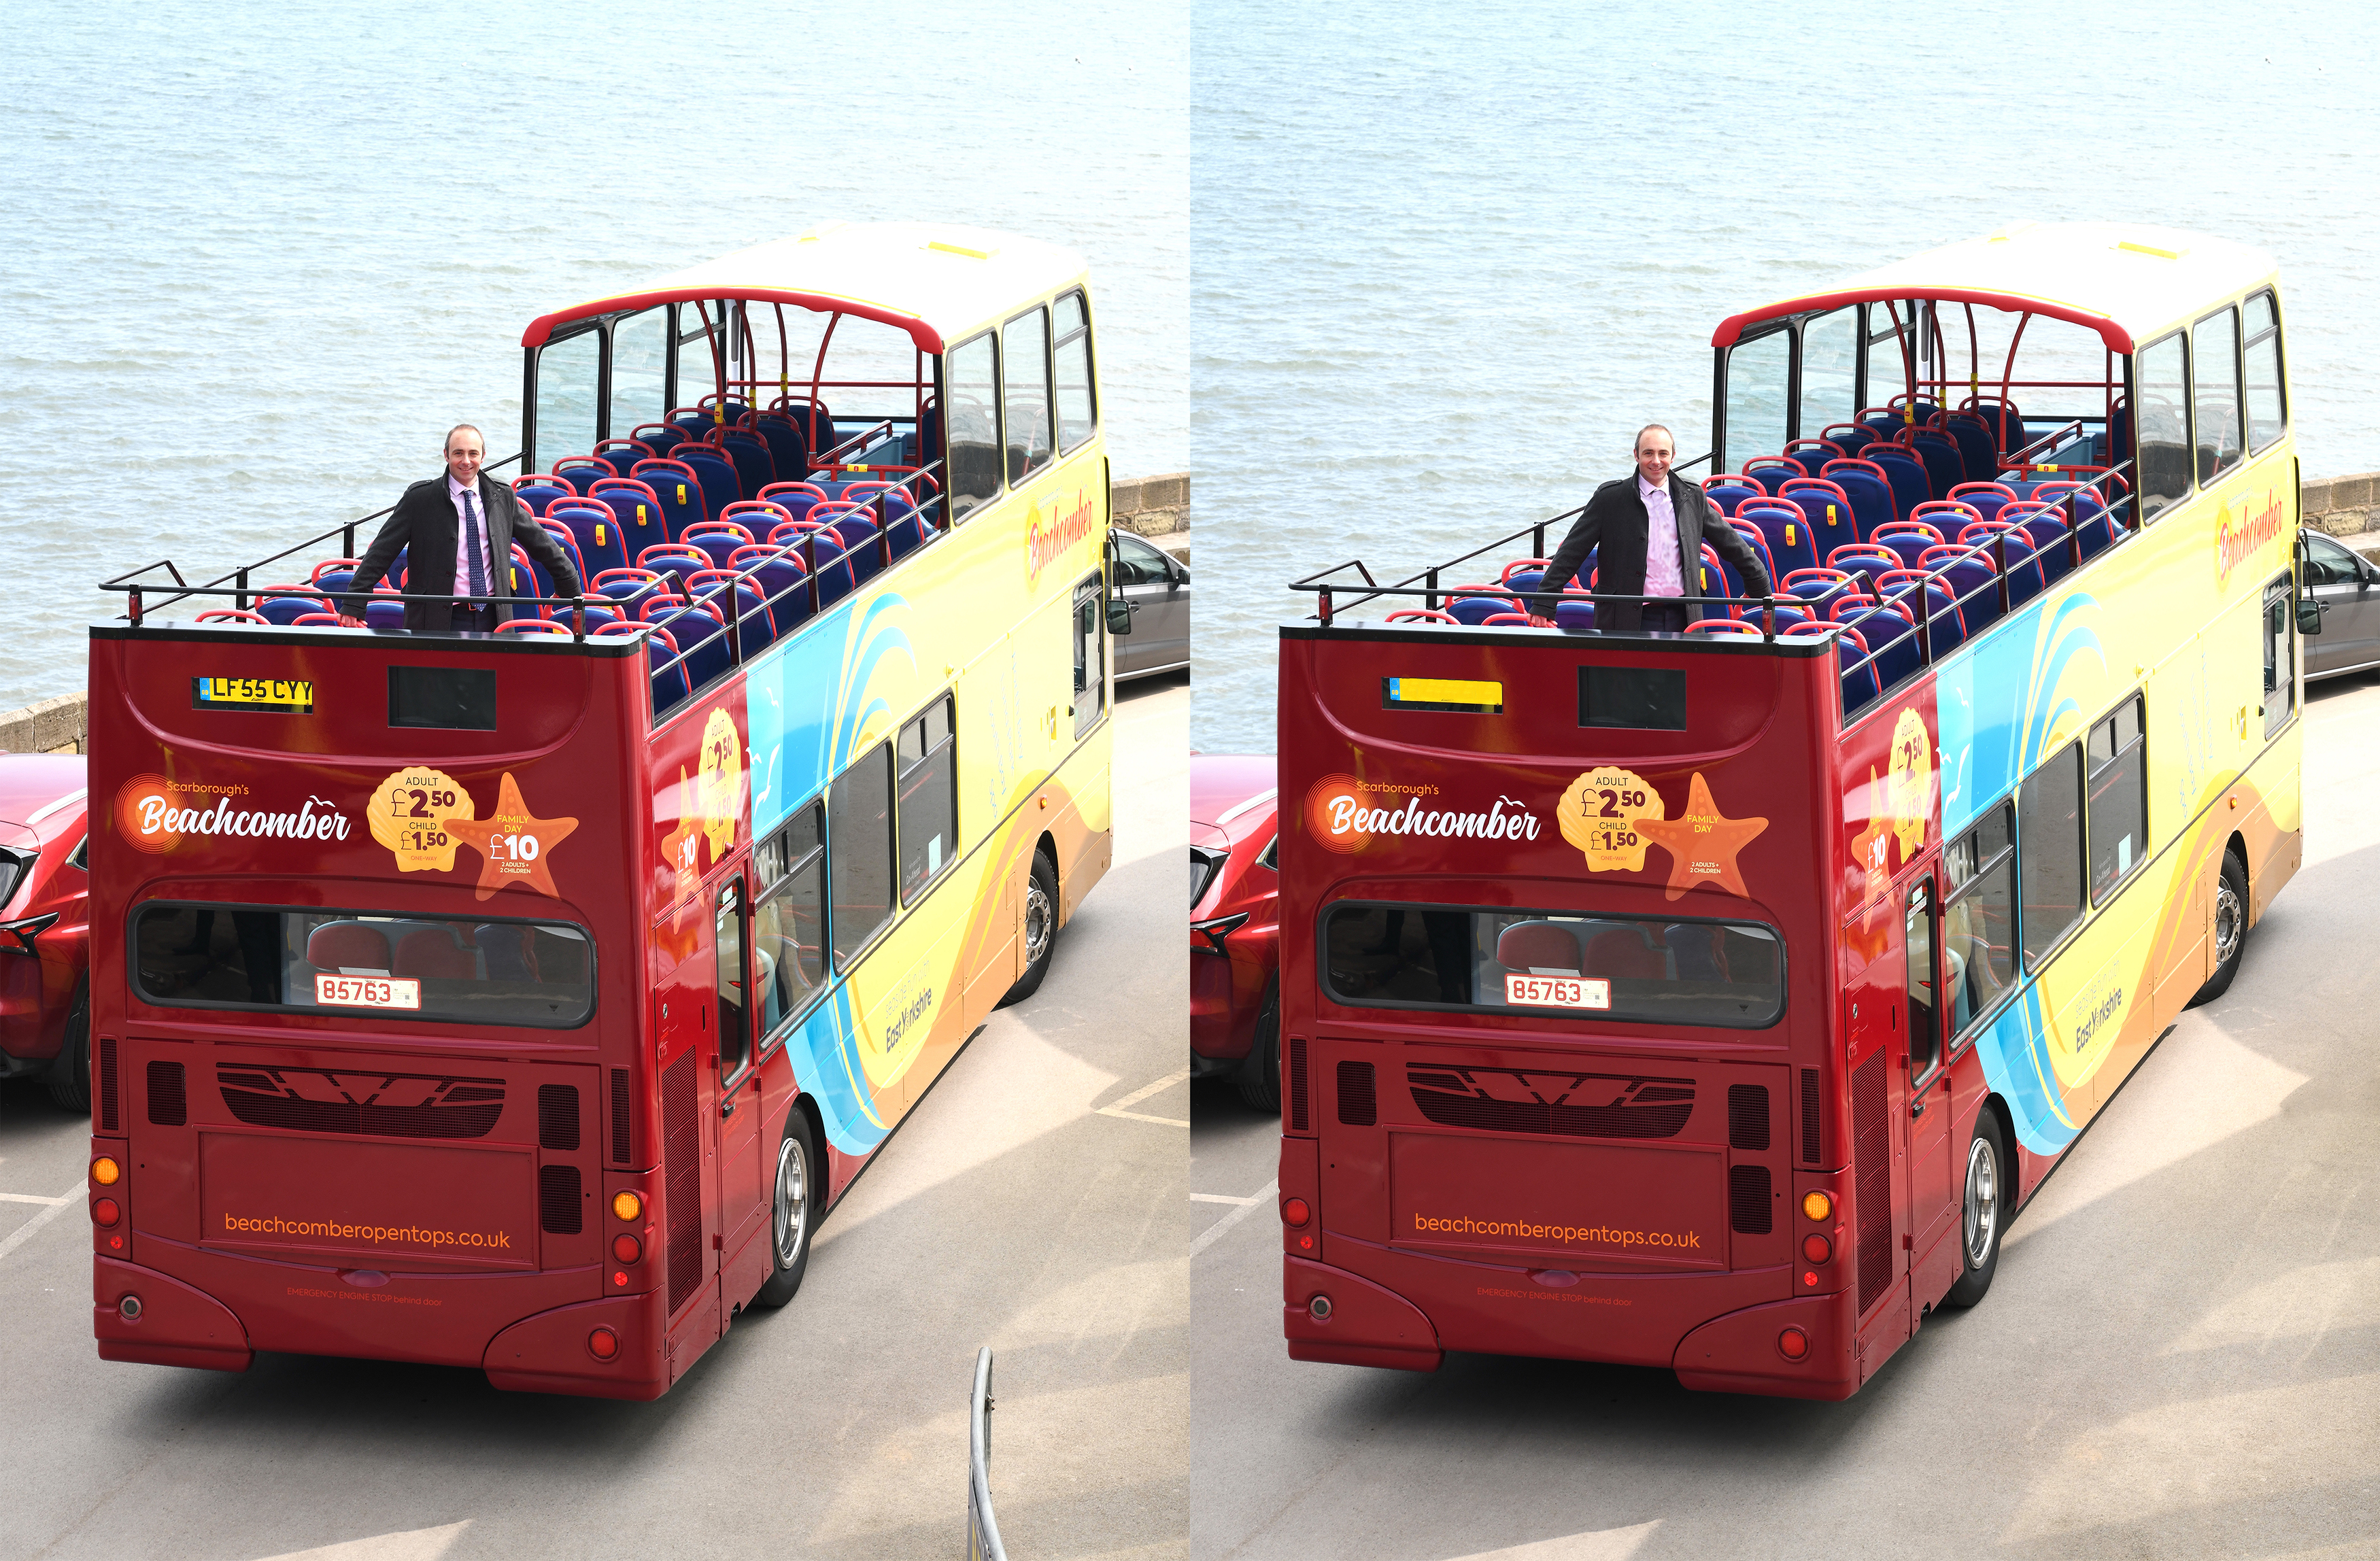 Two slightly different pictures of our Beachcomber open top bus